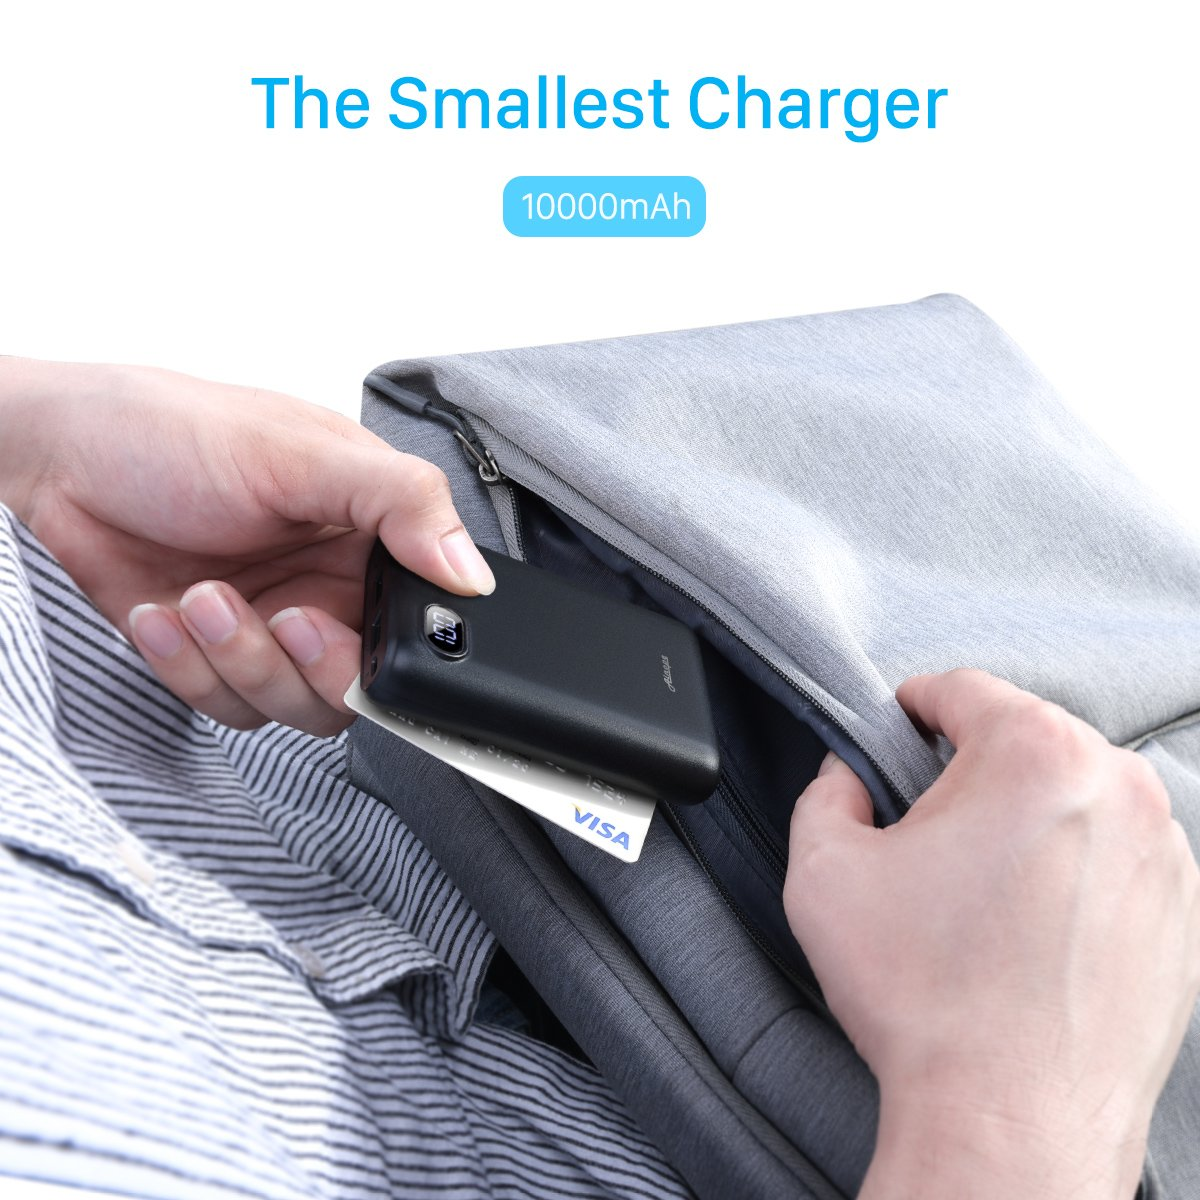 10000mAh Portable Charger,(Smallest) (LCD Display) (Powerful) Ainope External Battery Pack/Battery Charger/Phone Backup Power Bank with Dual USB Output(3.1A),Perfect Carry for Travel-Black by Ainope (Image #3)